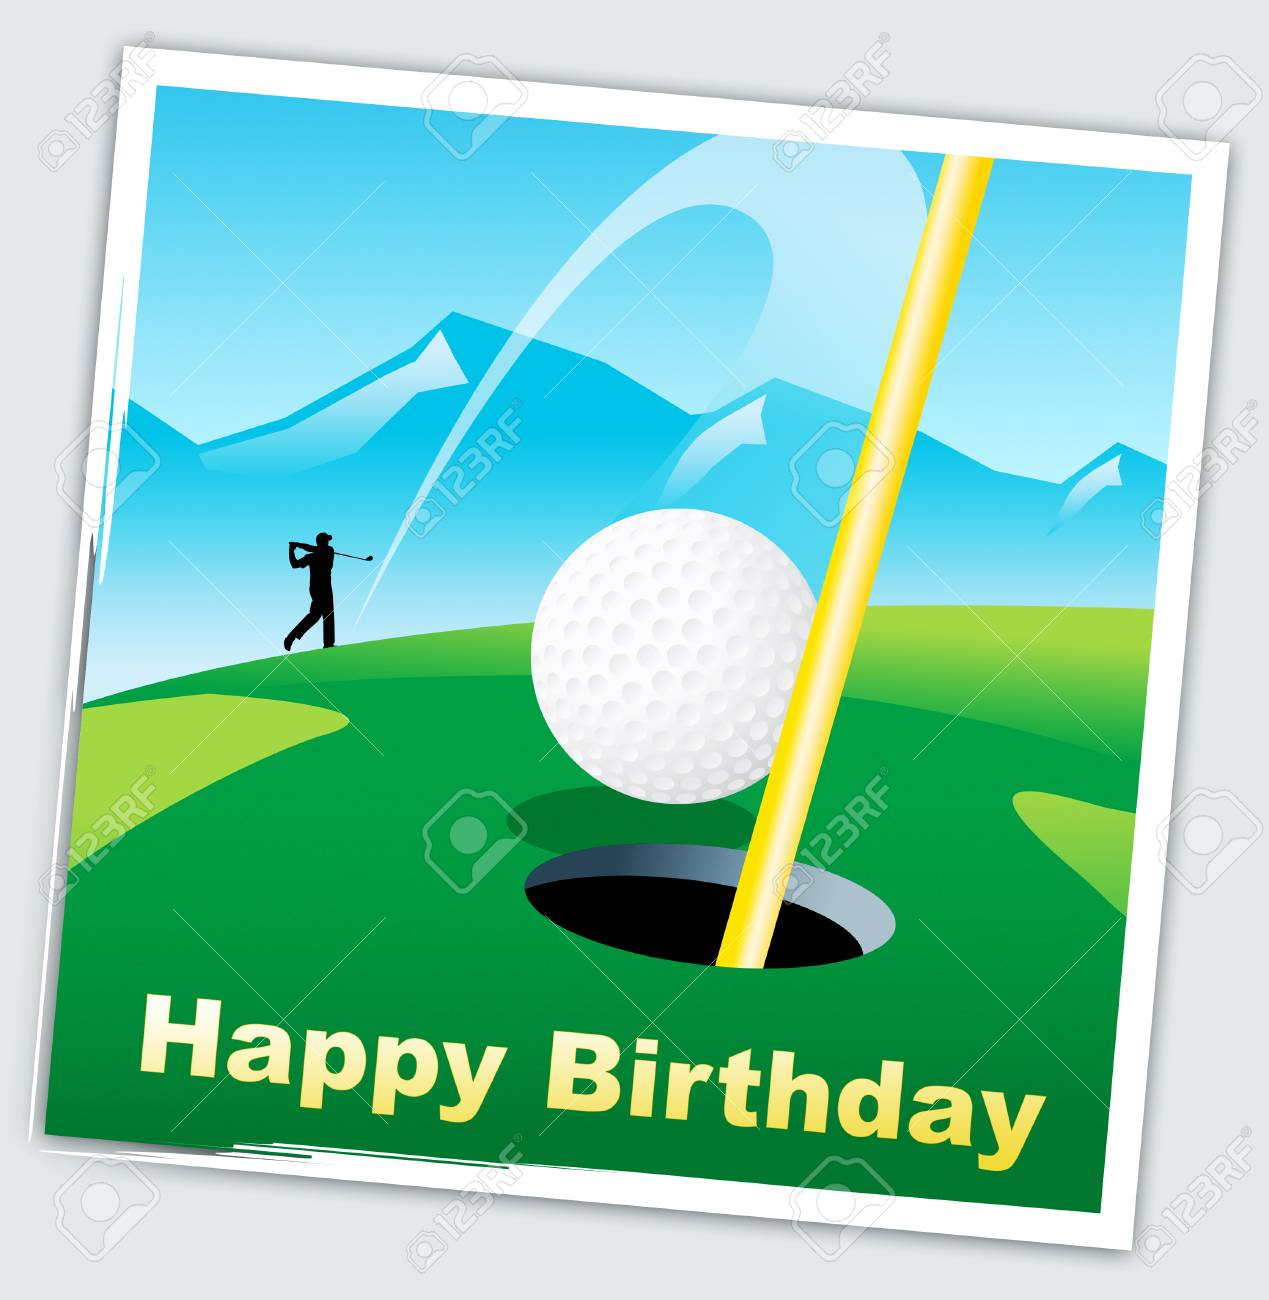 Happy Birthday Golfer Message As Surprise Greeting For Golf Player Stock Photo Picture And Royalty Free Image Image 116117907